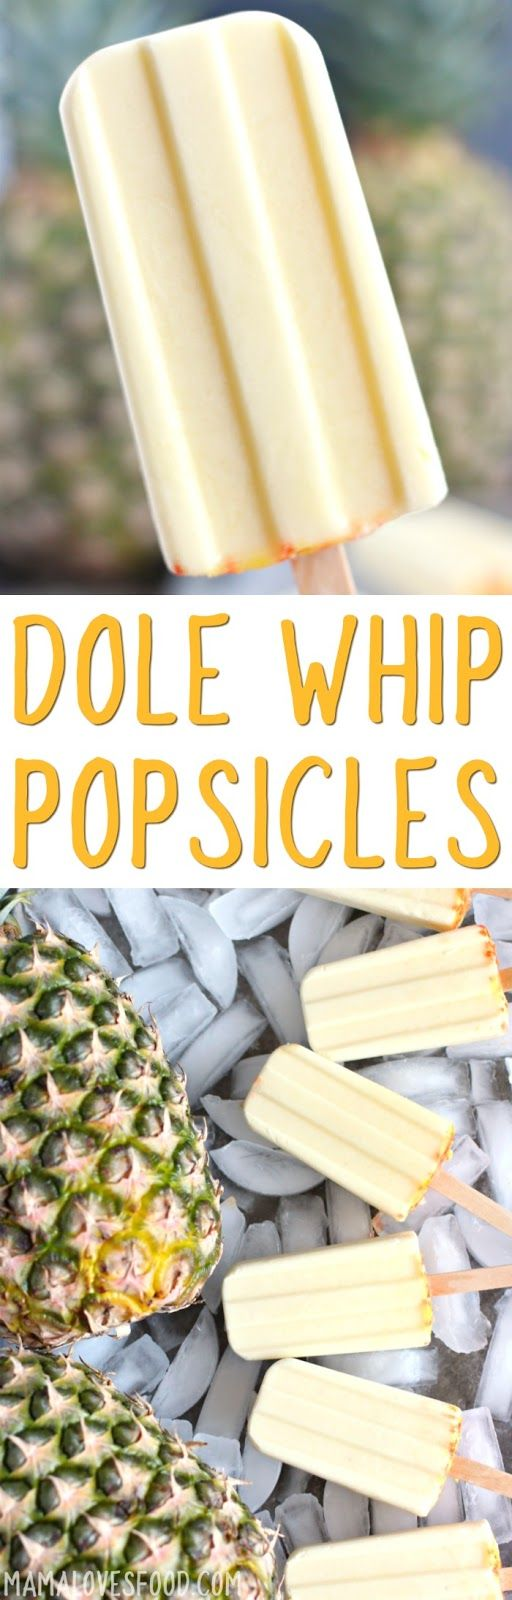 OMG JUST LIKE AT DISNEY! ---   Dole Whip Creamy Pineapple Popsicles Recipe